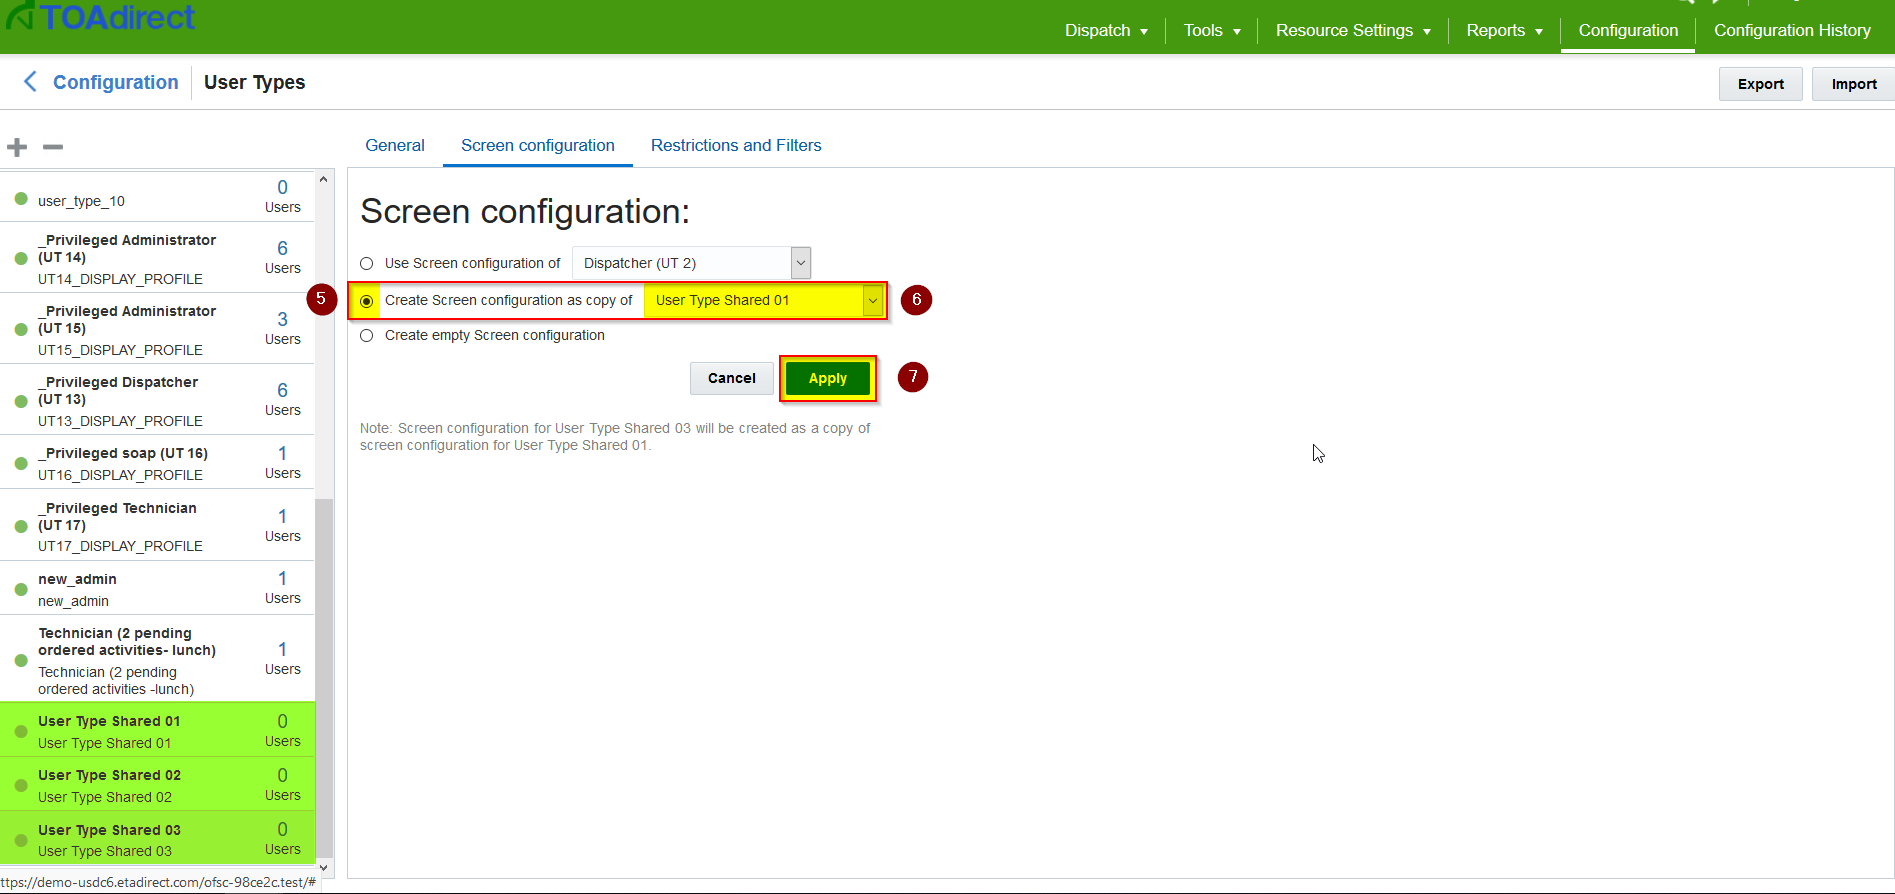 'Create Screen configuration as copy of' is selected. Apply button is highlighted for selection